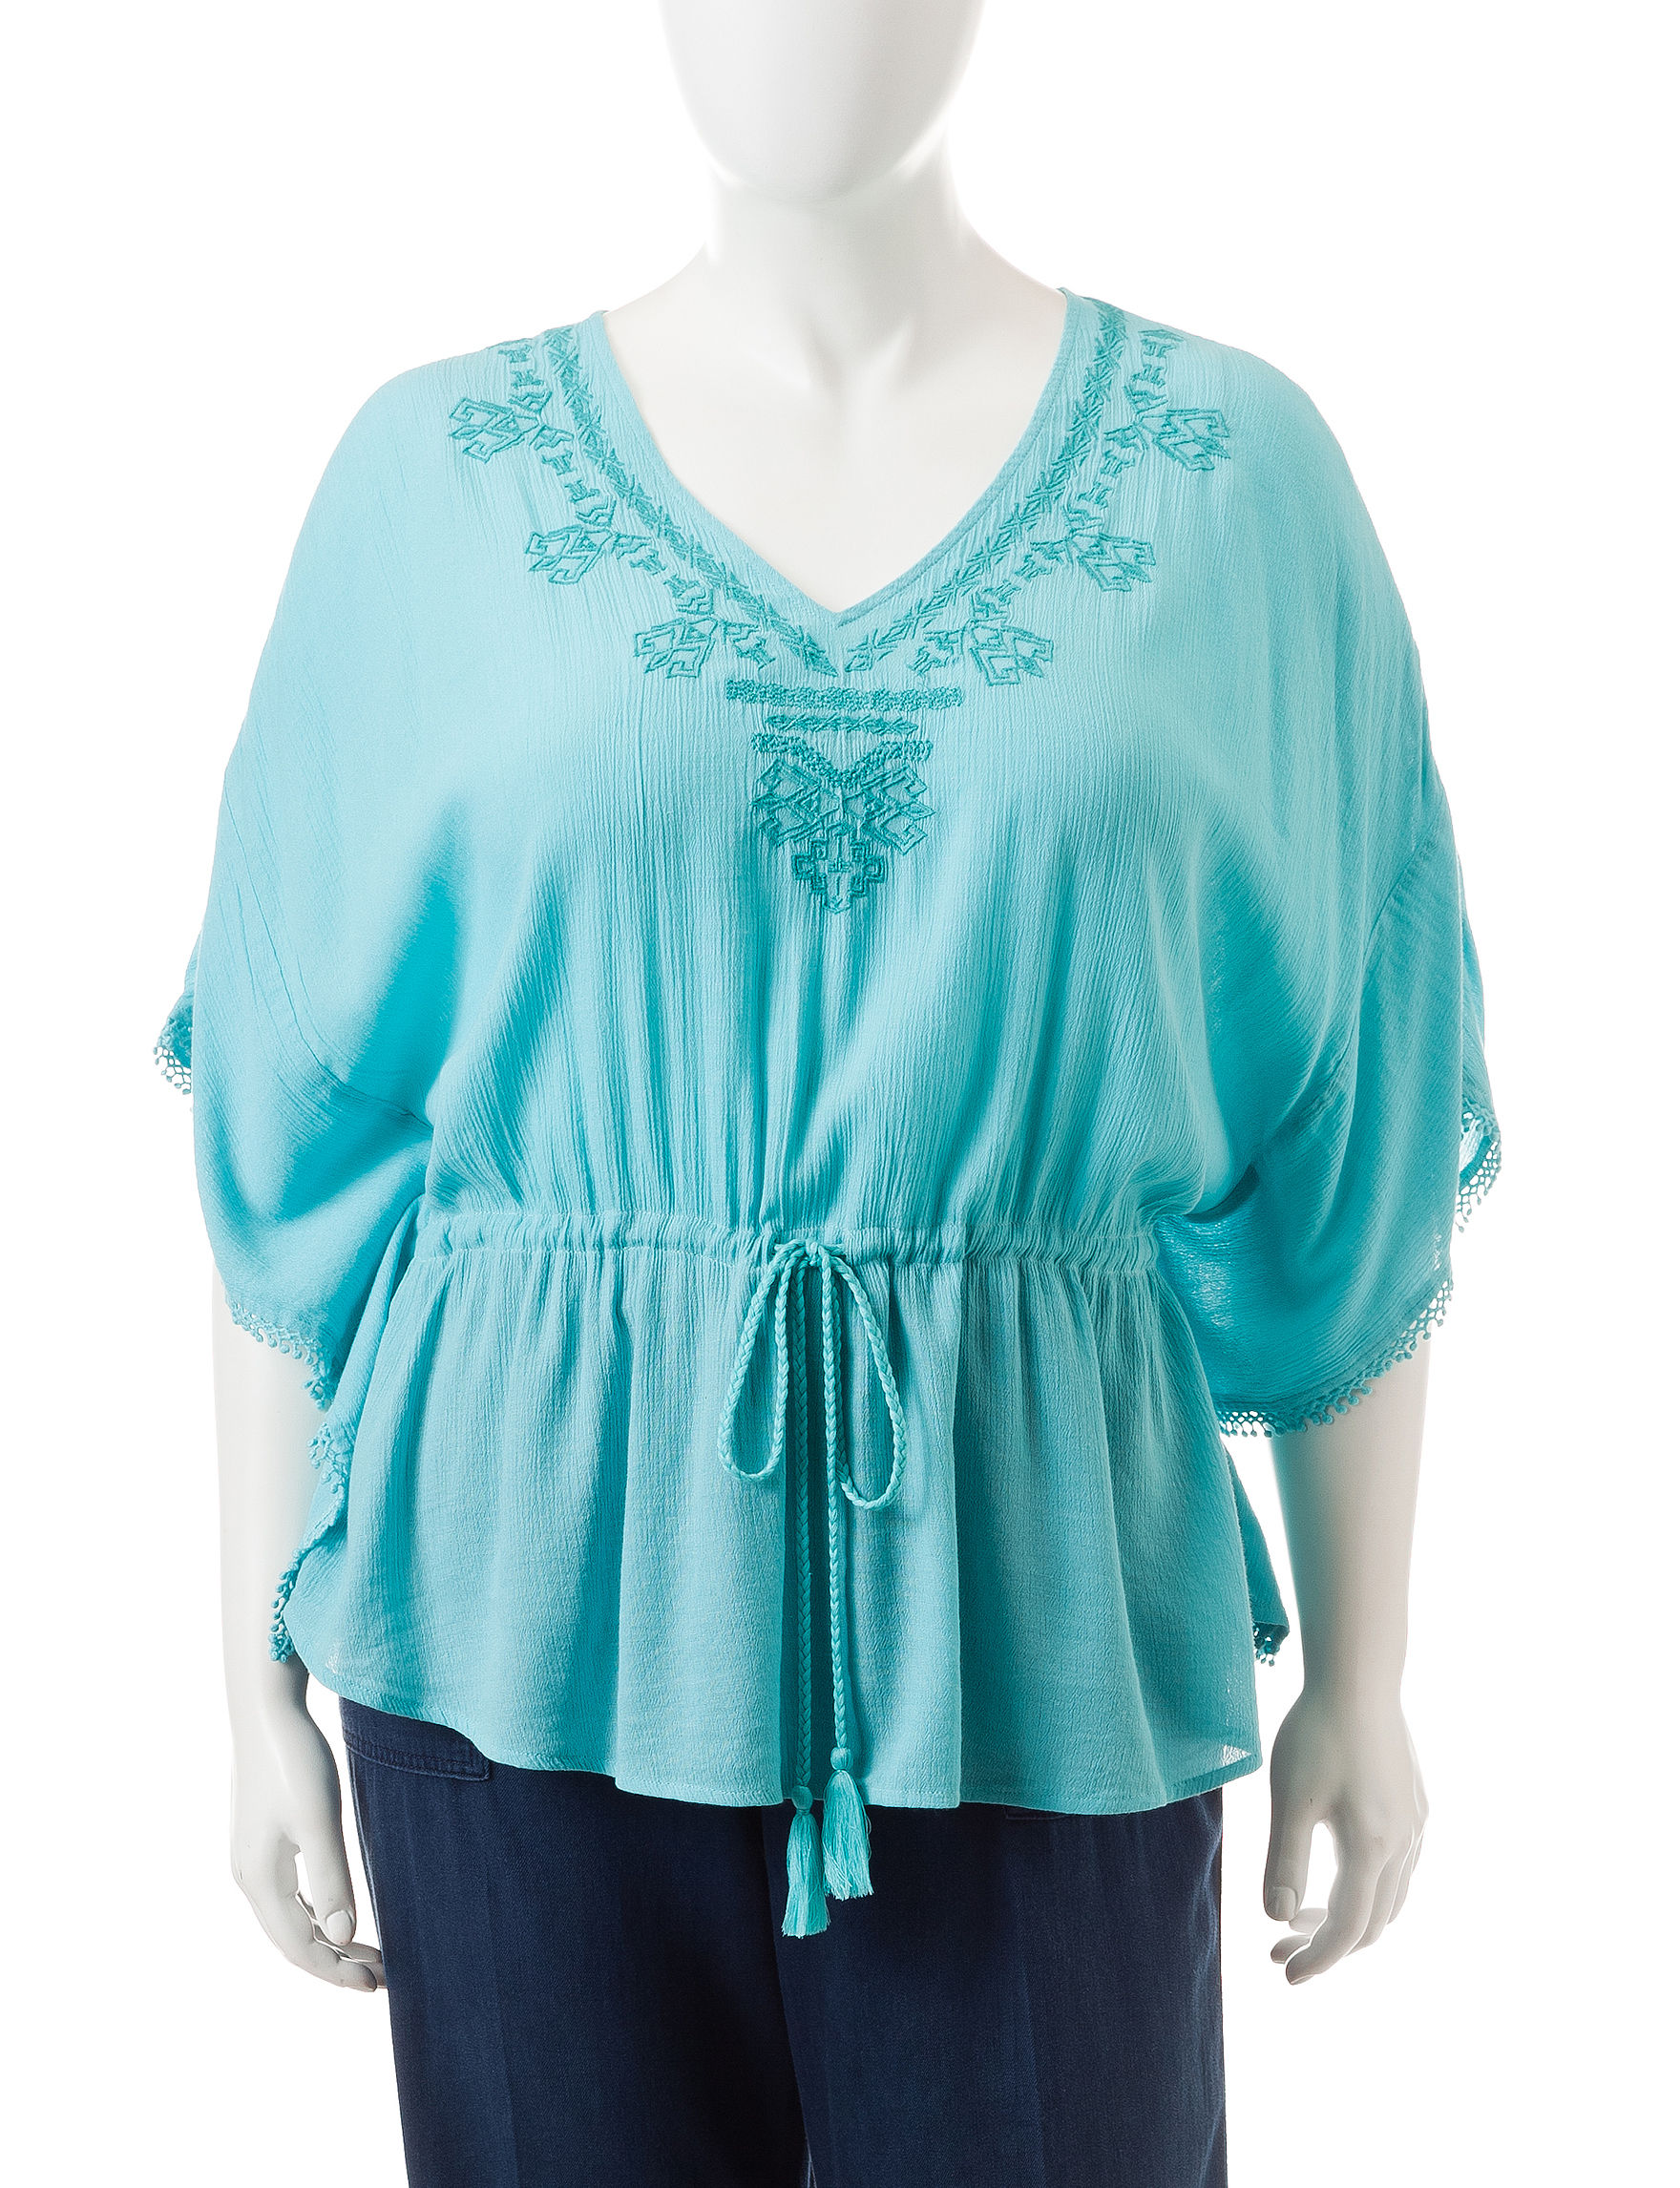 Jessica Simpson Dark Blue Shirts & Blouses